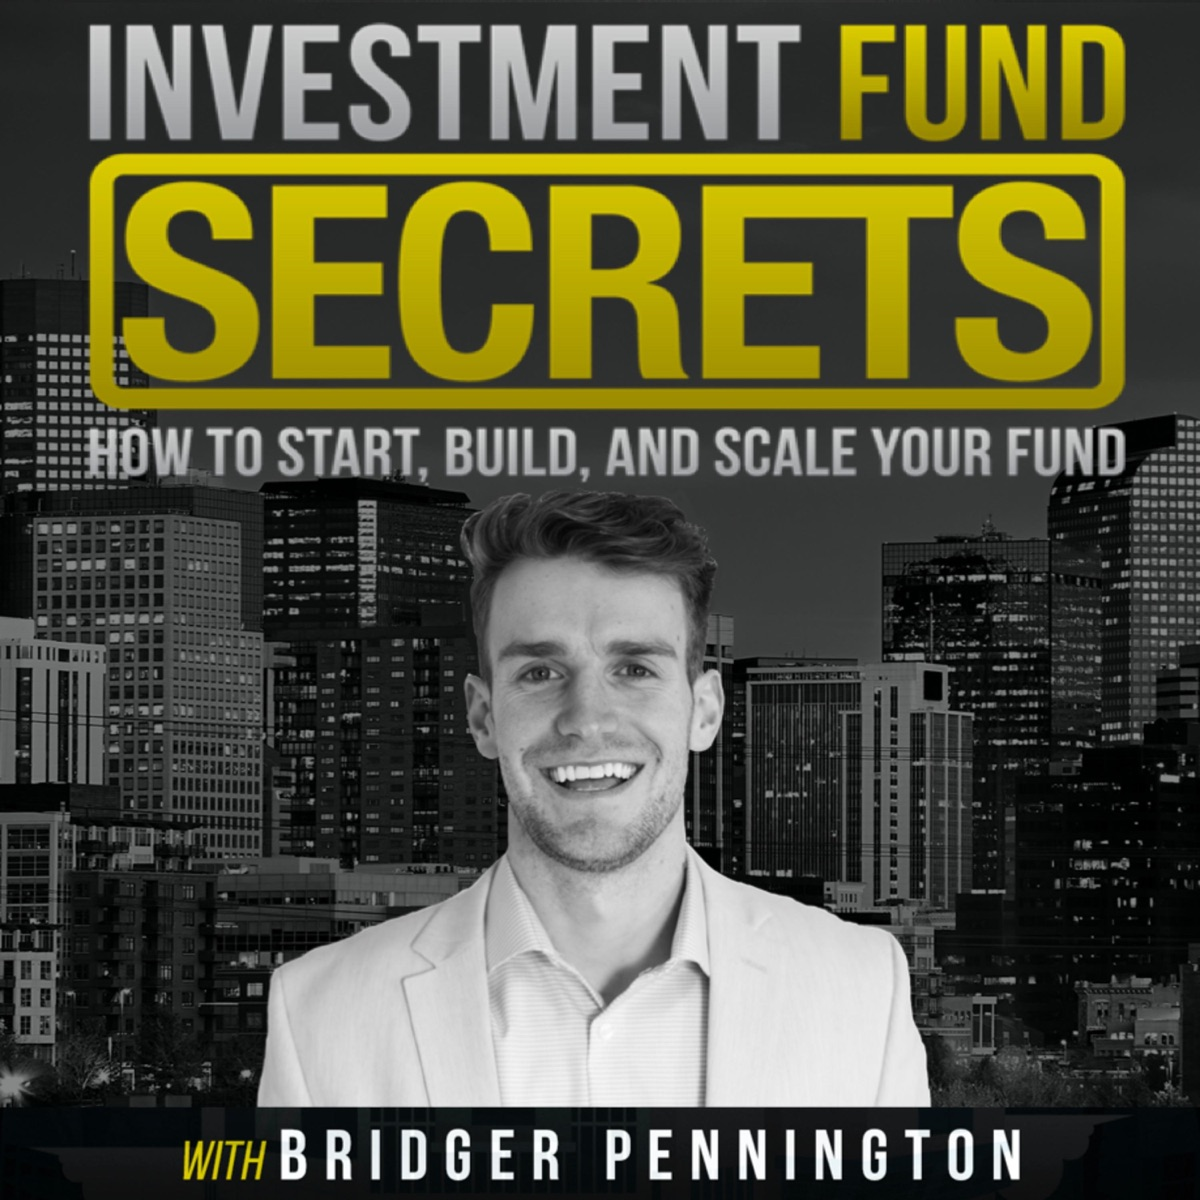 Investment Fund Secrets